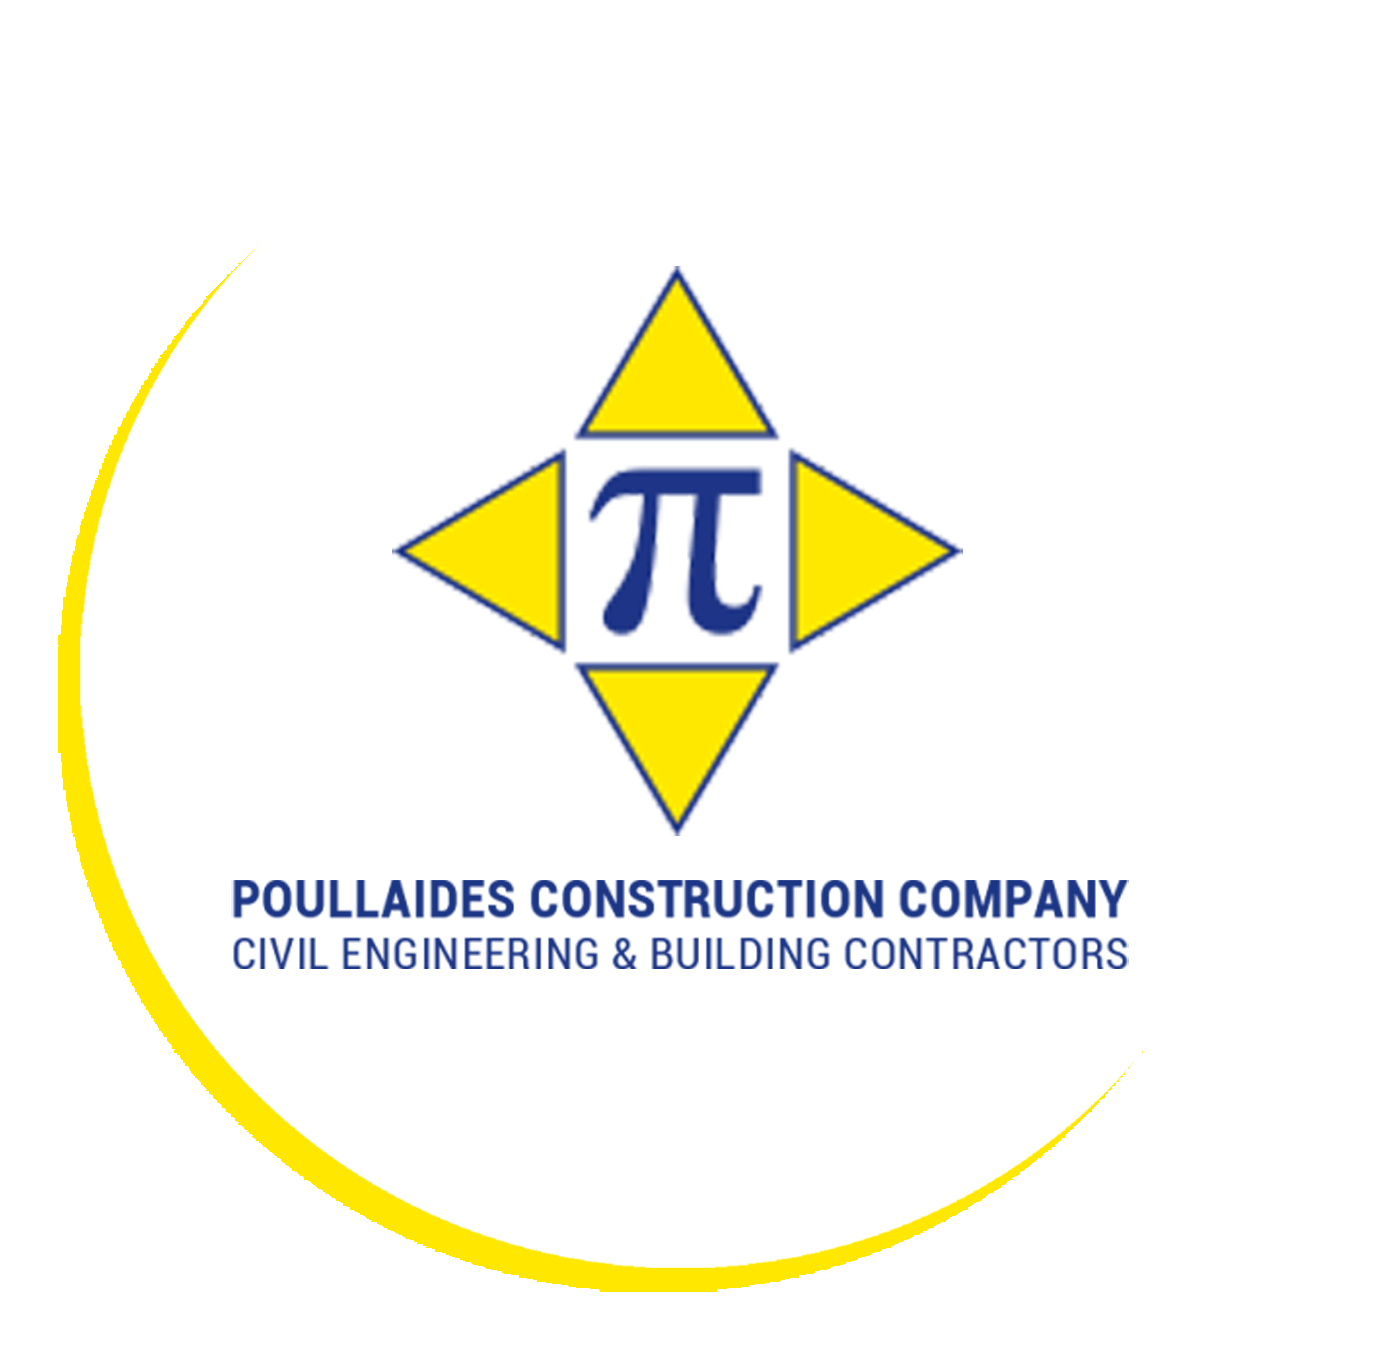 Poullaides Construction Company